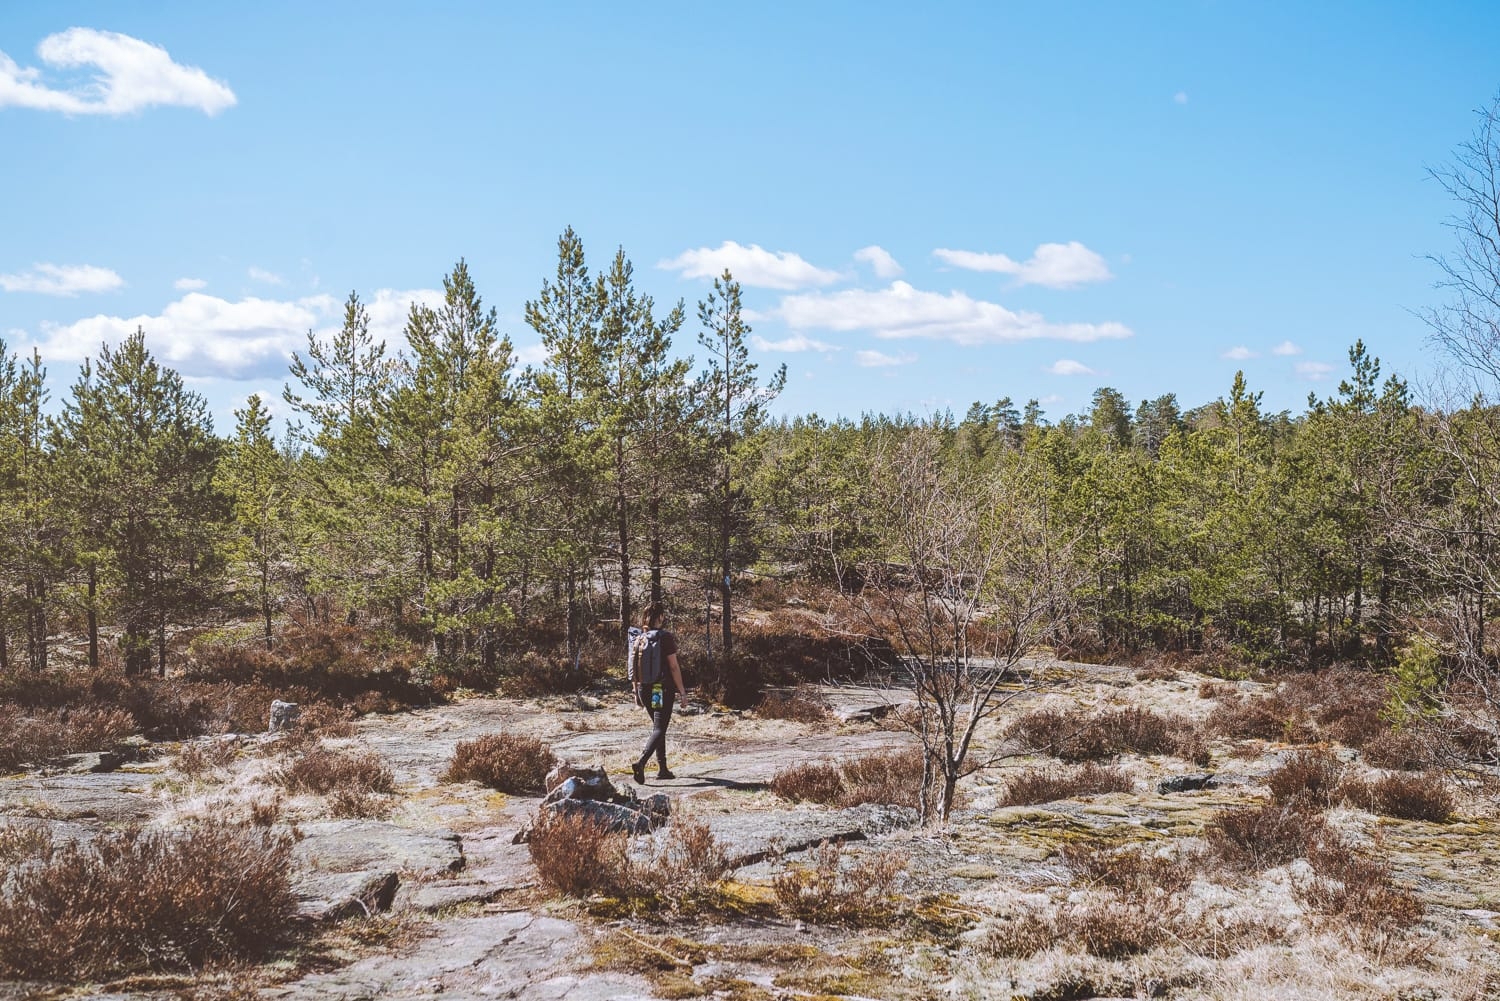 what to do during a weekend in Teijo, Finland